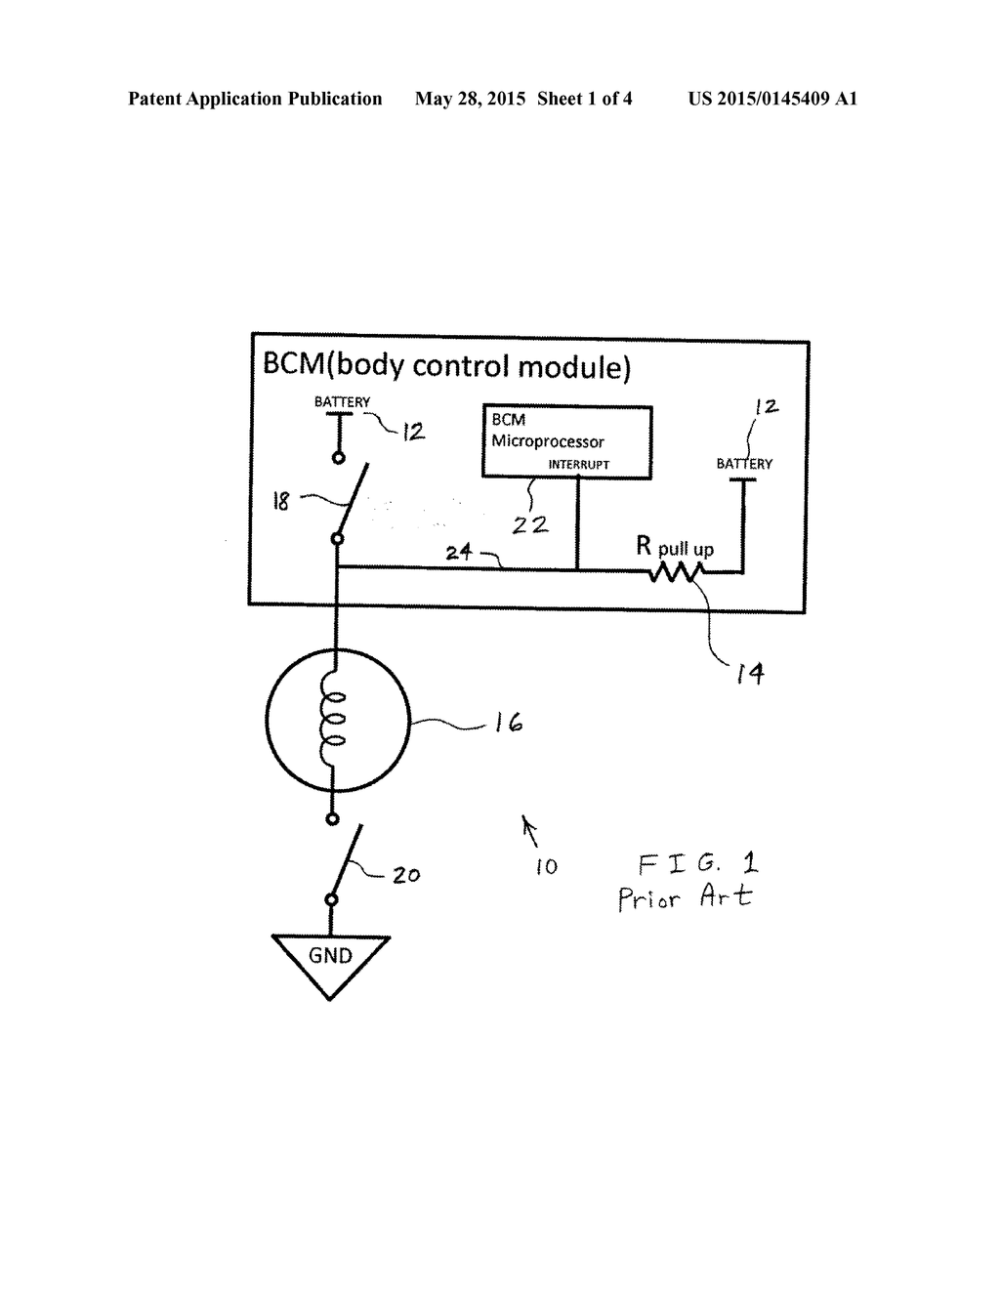 medium resolution of automotive led bleed resistor circuit and body control module interrupt wakeup circuit diagram schematic and image 02